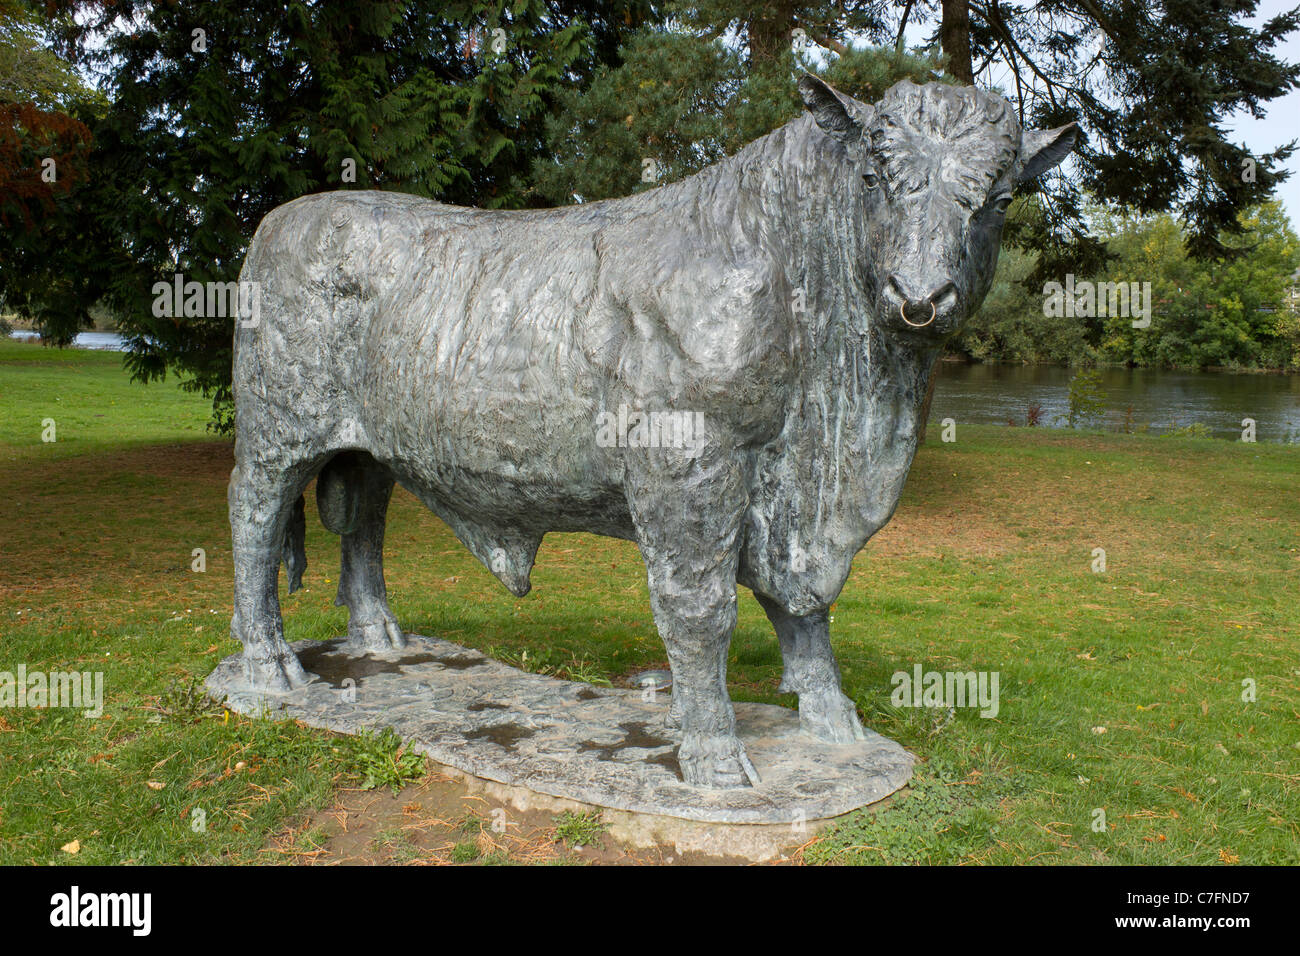 Welsh Black bull statue, Builth Wells Powys Wales UK. Stock Photo